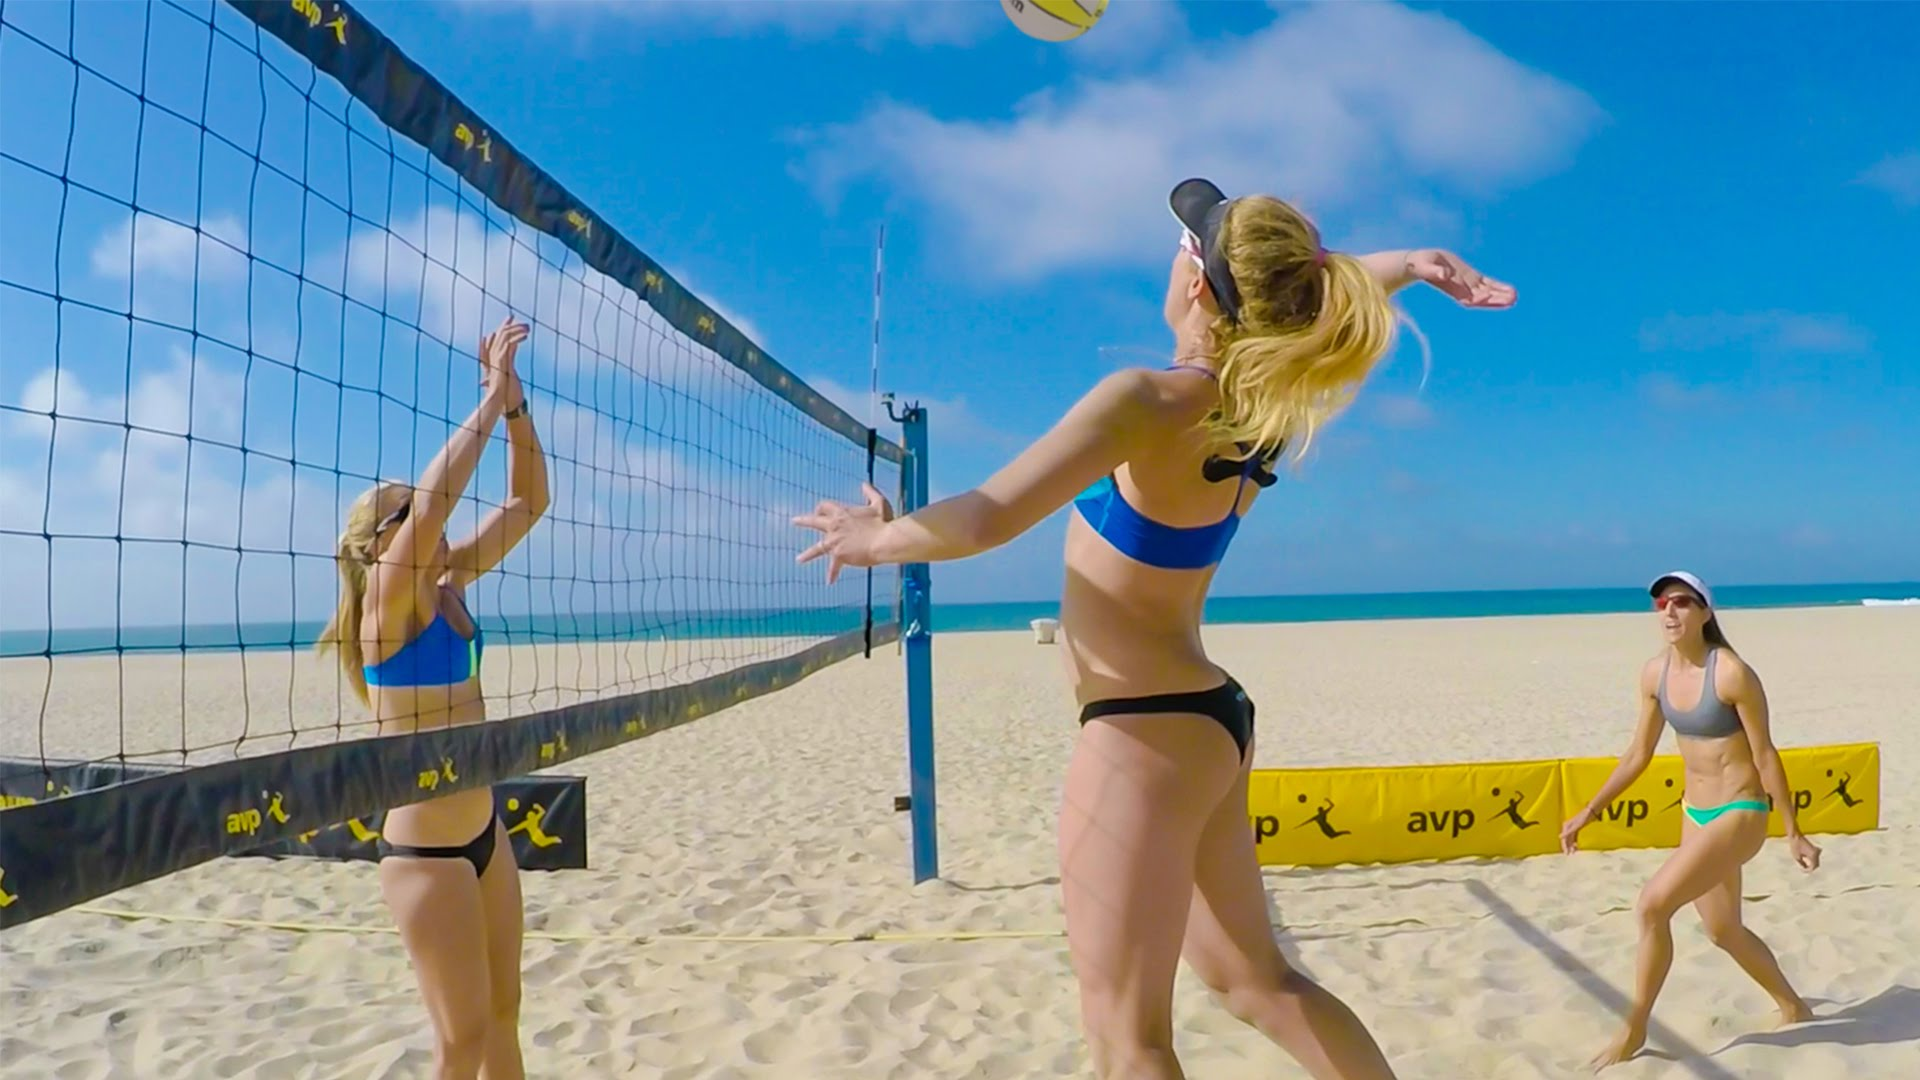 HQ Beach Volleyball Wallpapers | File 202.17Kb